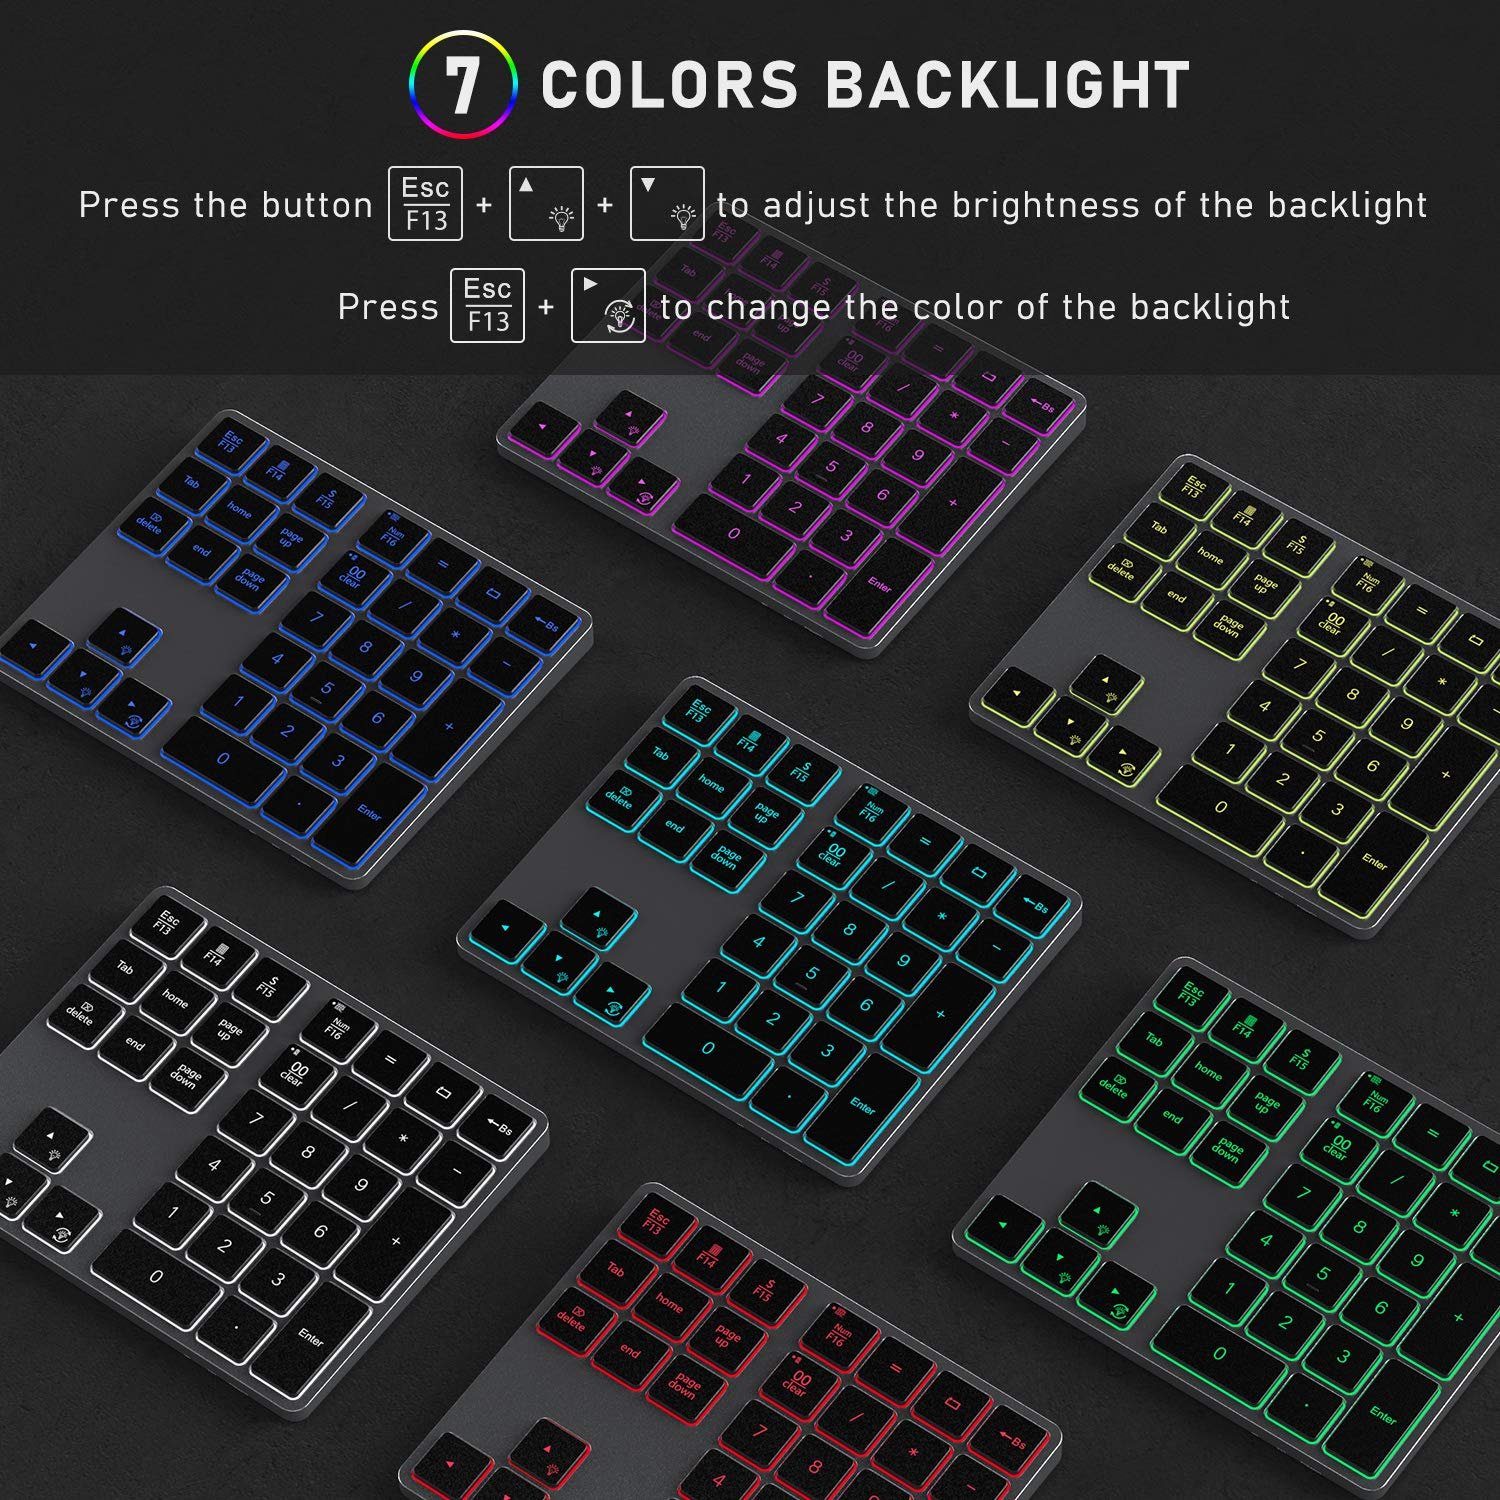 Space Grey USB Wireless Backlit Numeric Keypad Jelly Comb Portable Rechargeable Number Pad with Full 34 Keys for Laptop PC 7 Colors Backlit Computer with Windows System